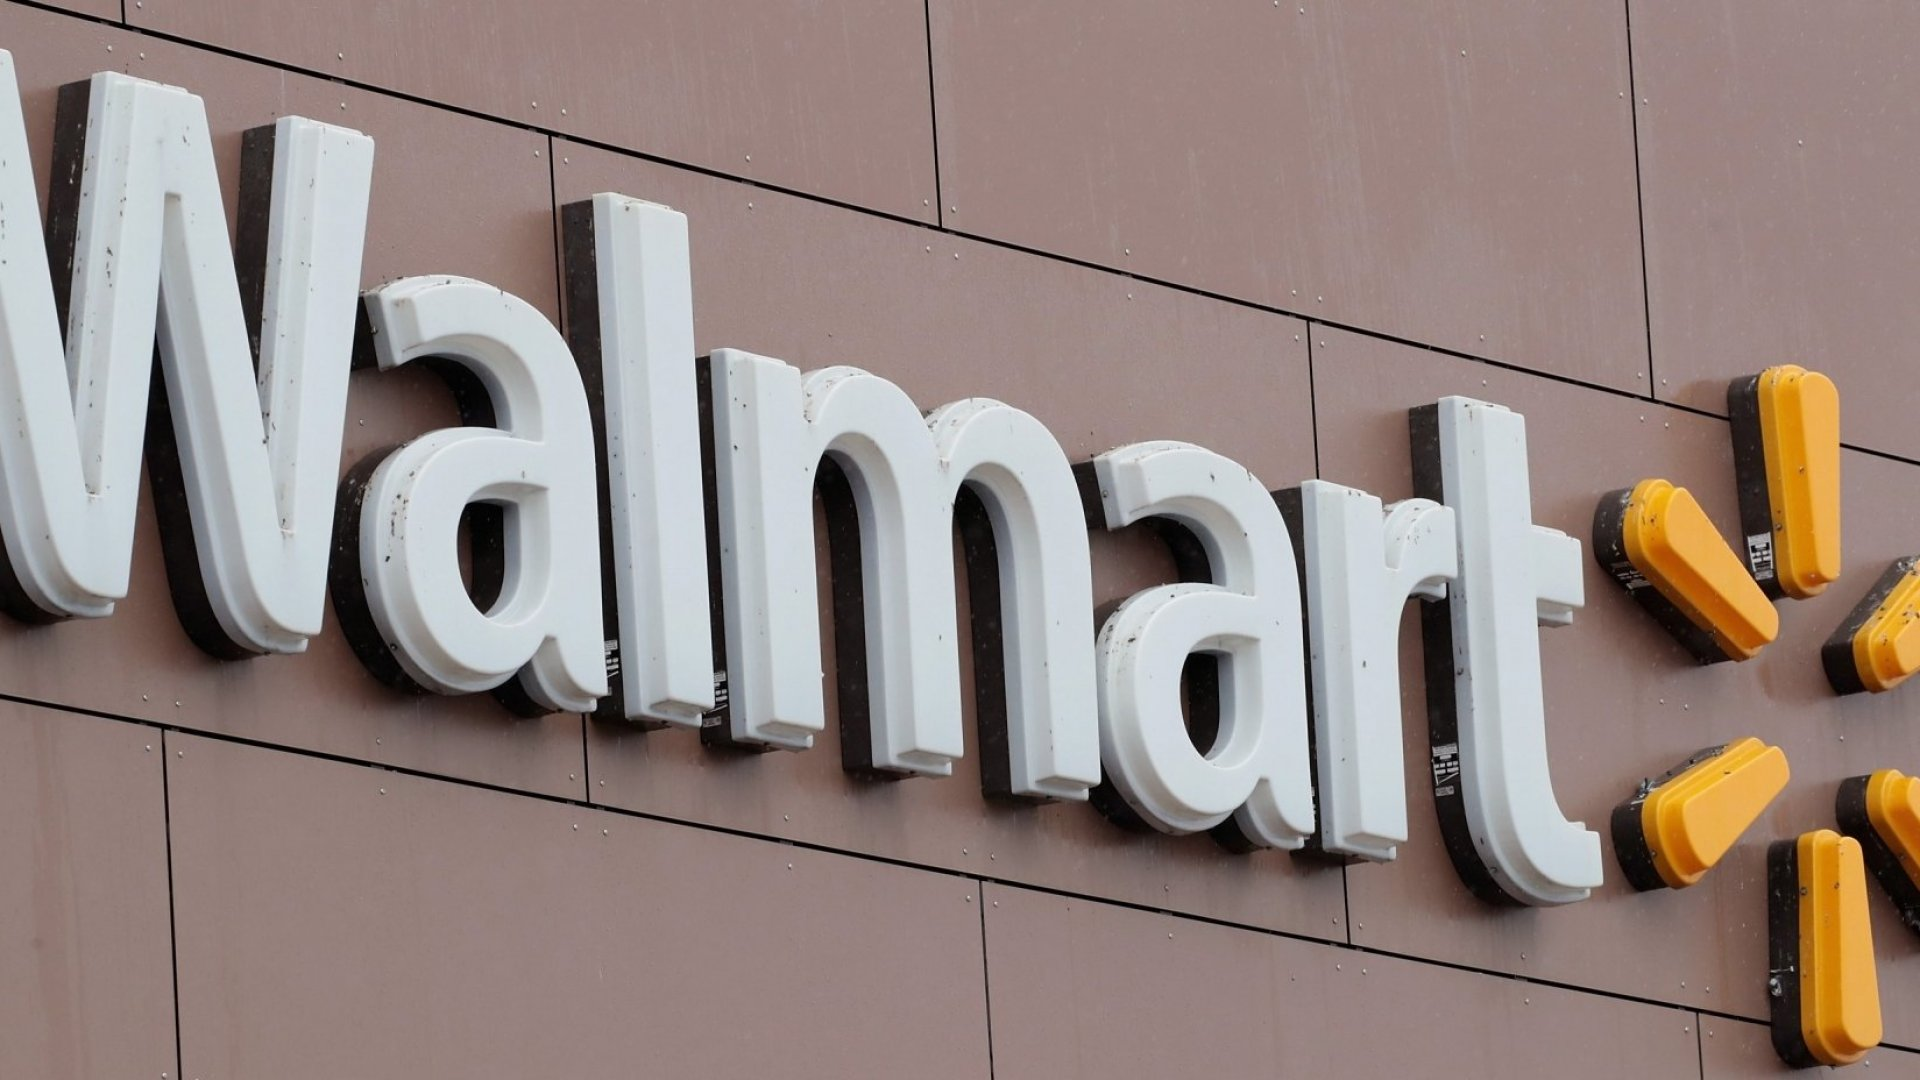 With 1 Small Change Walmart Saved $200 Million (No, It Doesn't Involve Cutting Jobs)